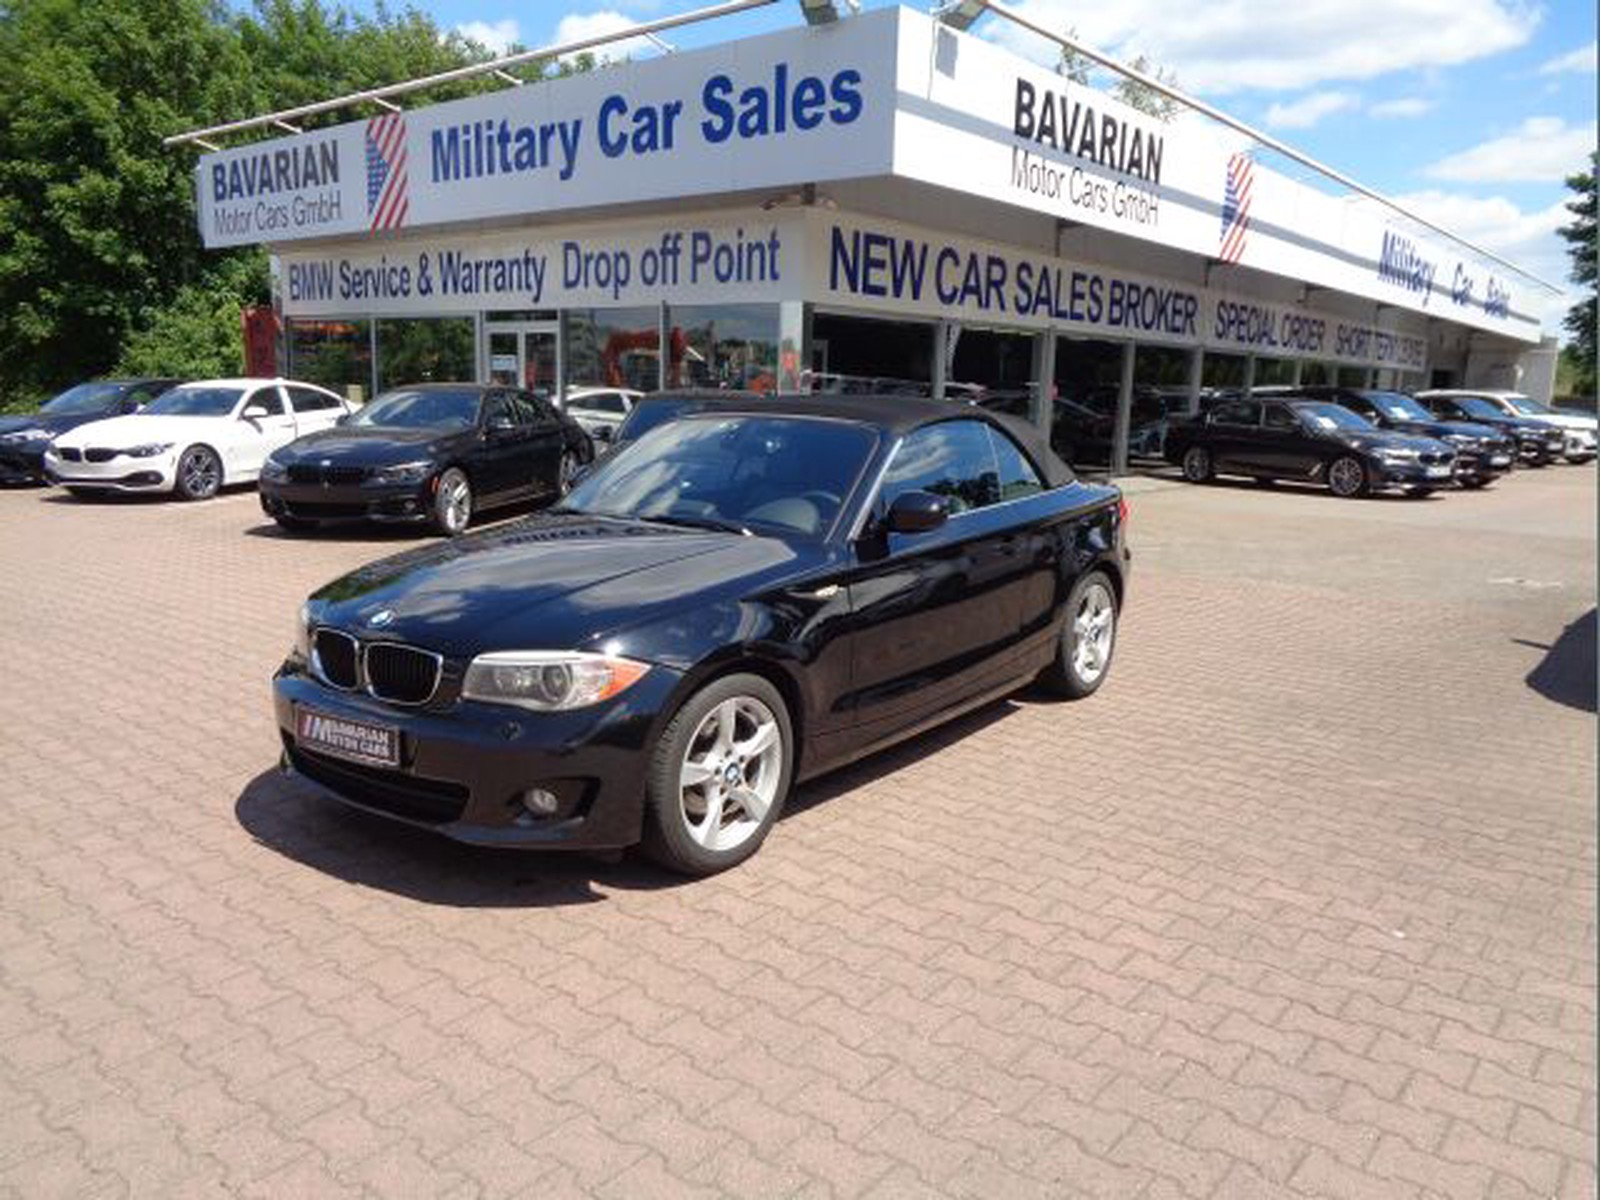 Bmw 128 I Convertible Tax Free Military Sales In Kaiserslautern Price 12995 Usd Int Nr U 16513 Sold